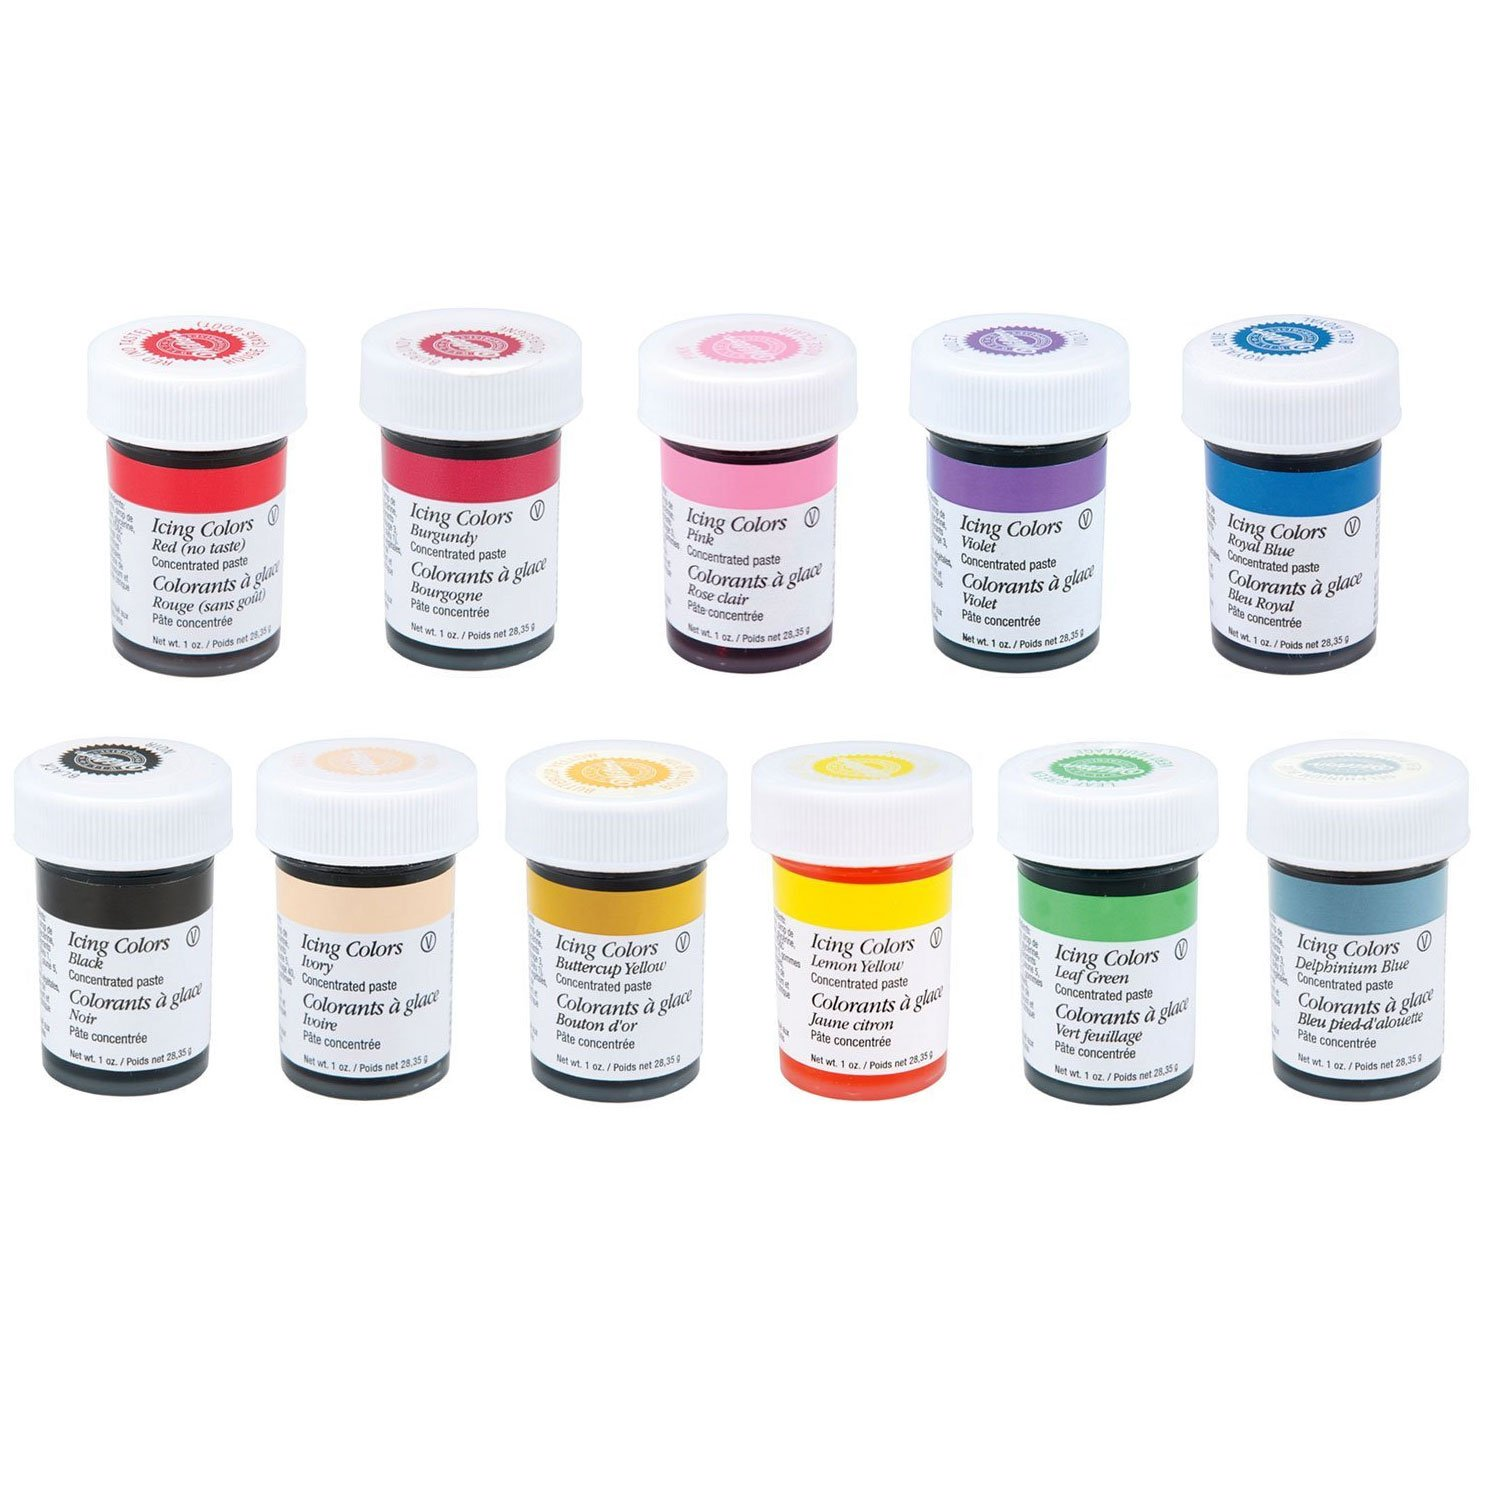 Amazoncom Wilton 12 Icing Color Set Includes 12 Large 1 Ounce